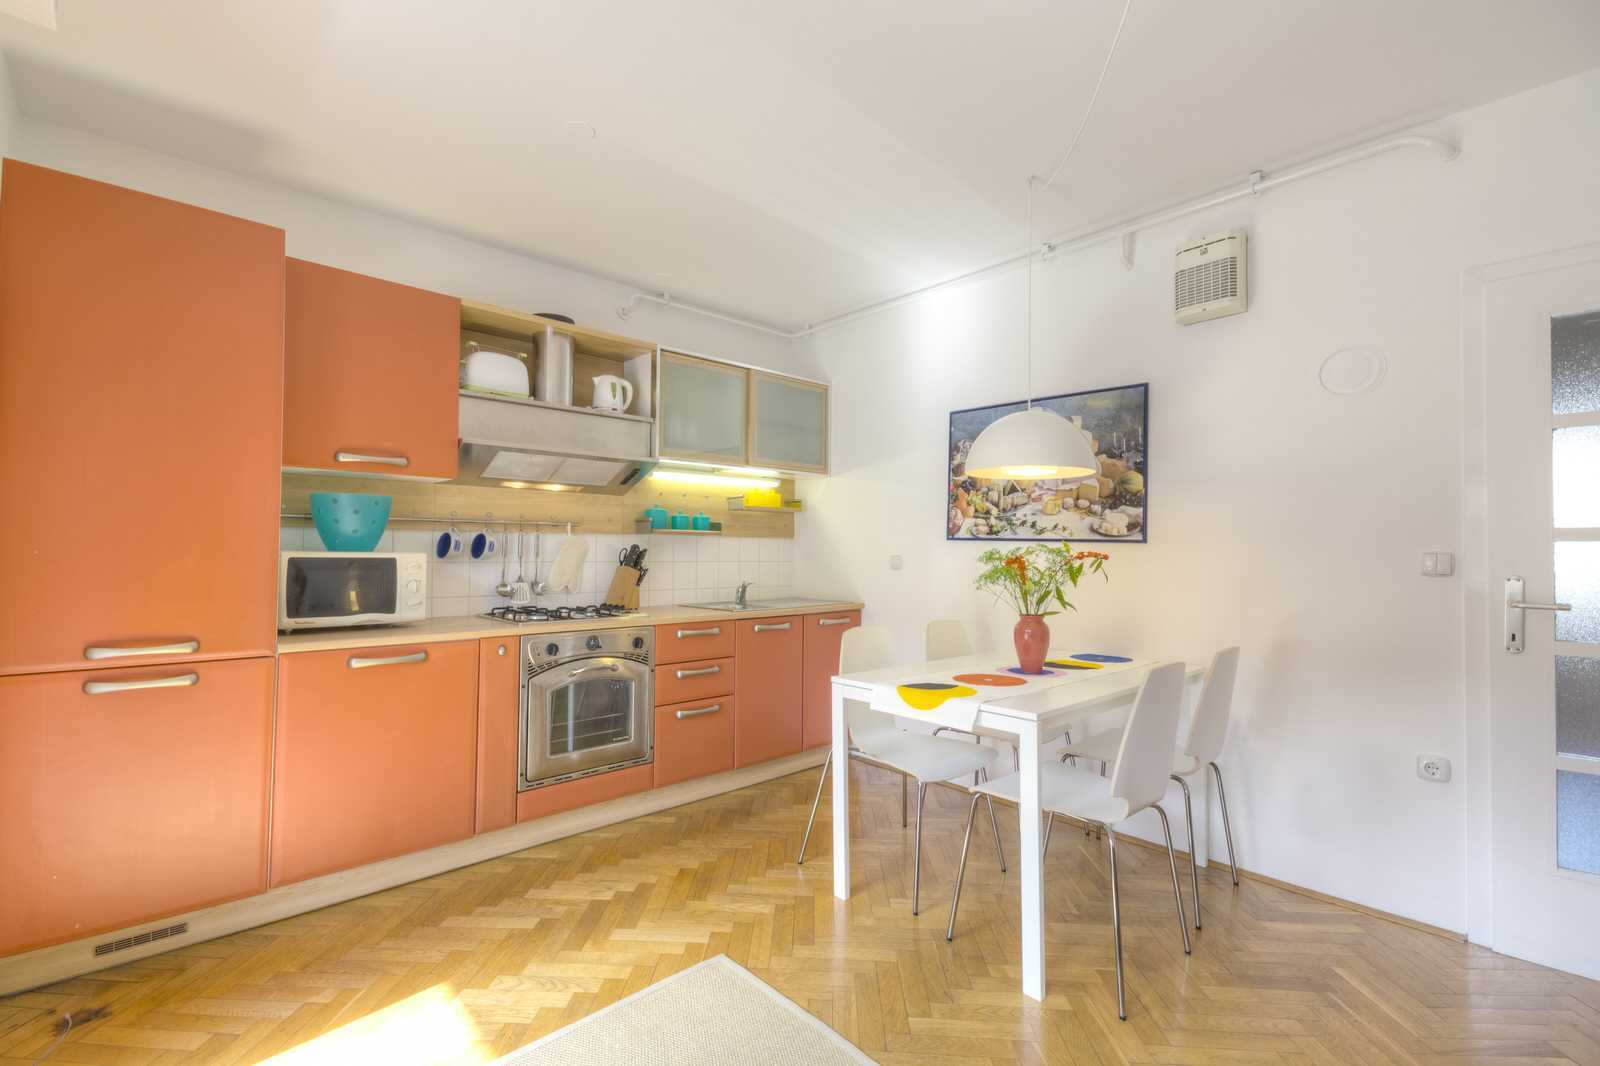 Parquet flooring acroos the apartment makes it feel warm. Fully equipped kitchen is a pleasure to cook in.